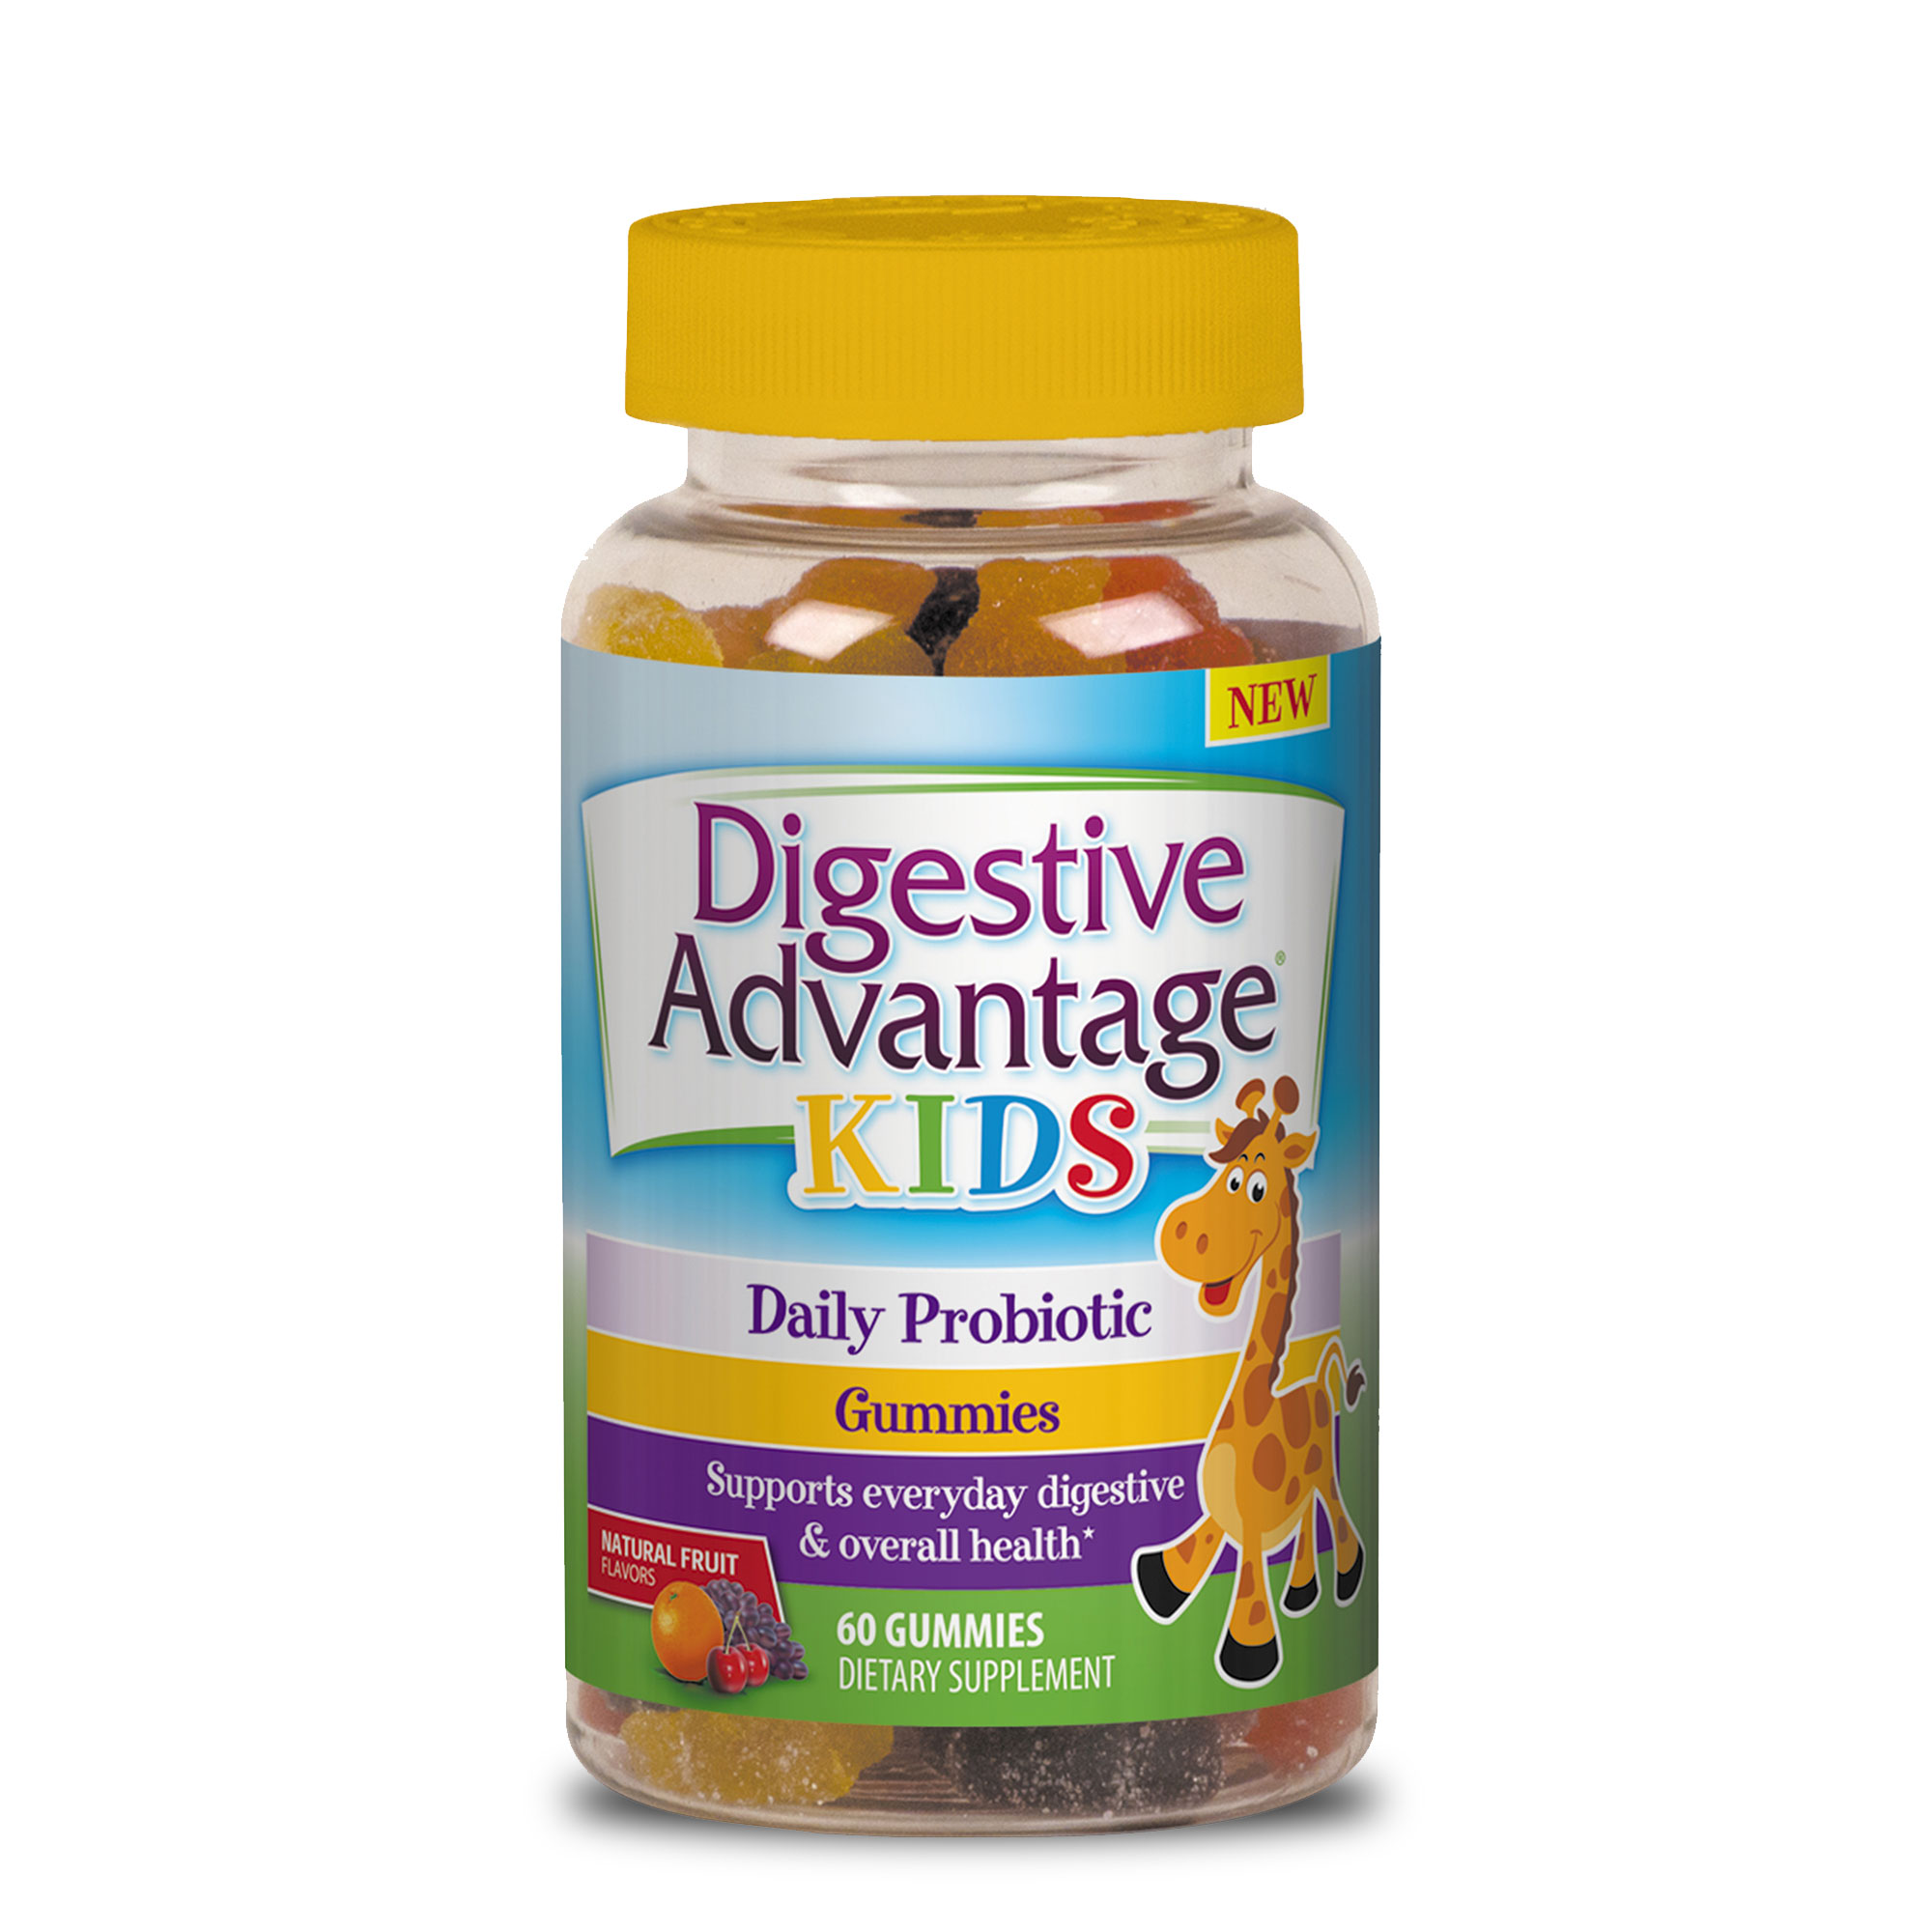 Digestive Advantage Kids Daily Probiotic Gummies, 60 count